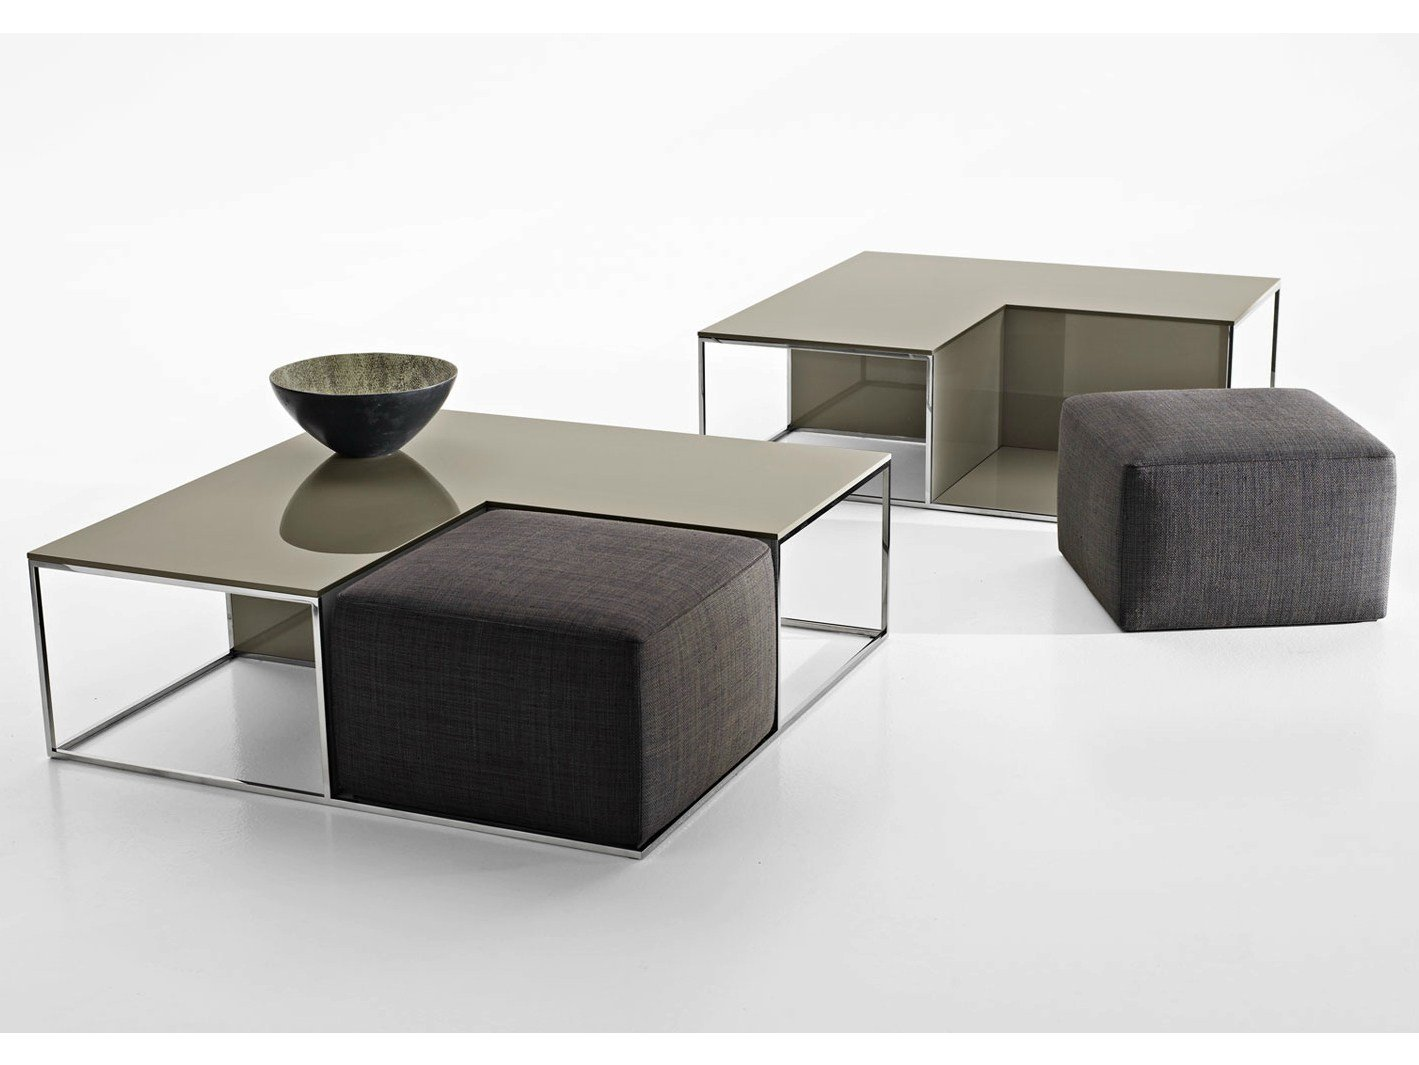 pouf coffee table area by b b italia design paolo piva. Black Bedroom Furniture Sets. Home Design Ideas